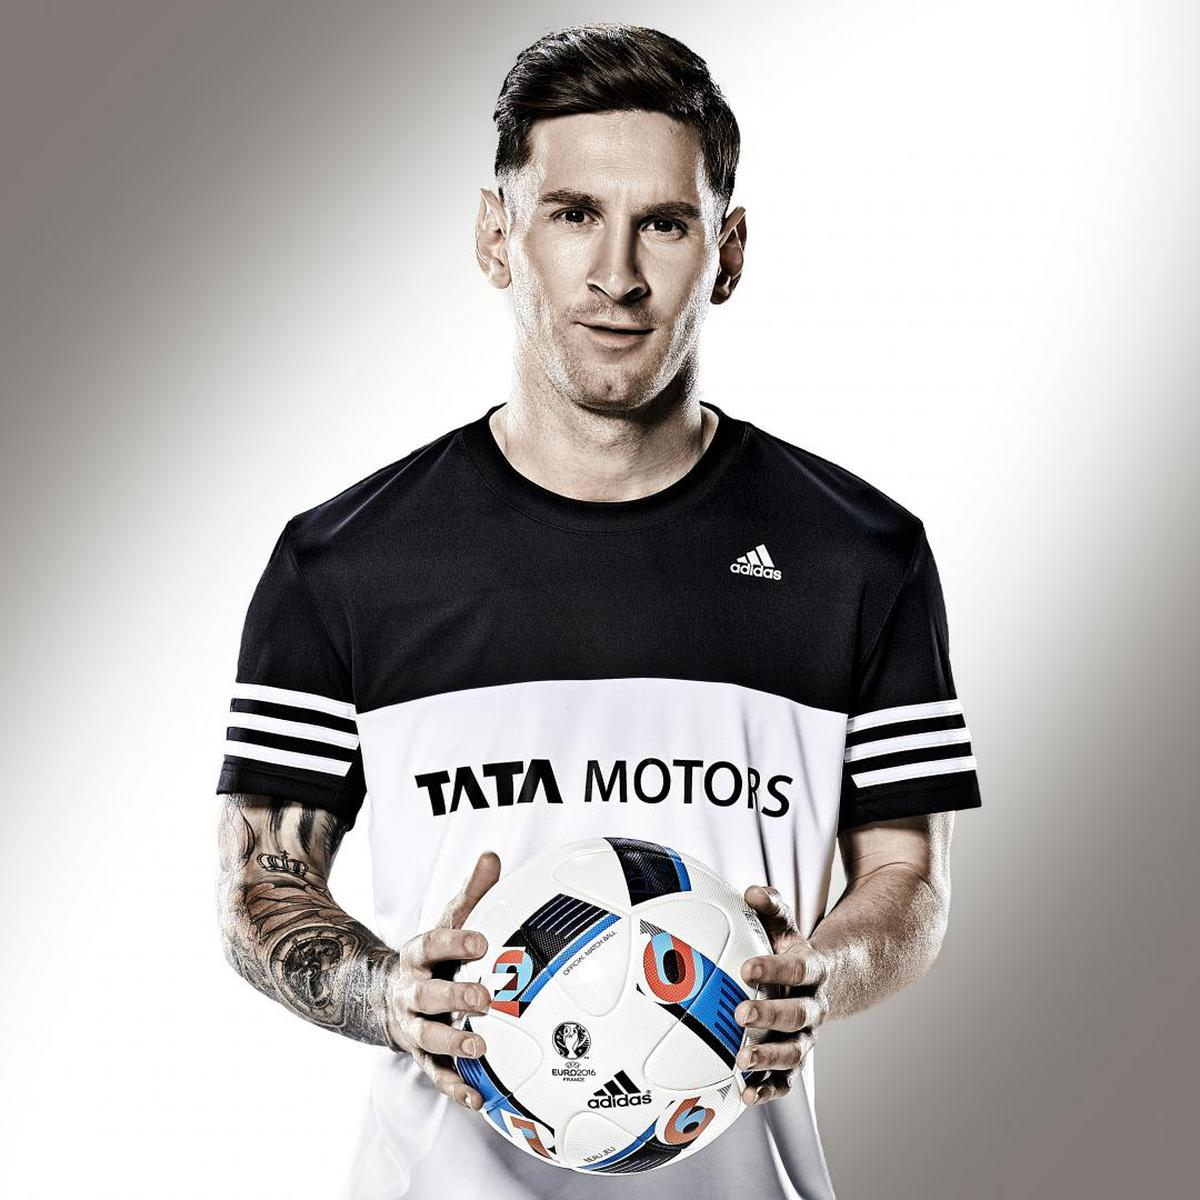 Image of T-shirt, Clothing, Jersey, Sportswear, Player, Sleeve etc.